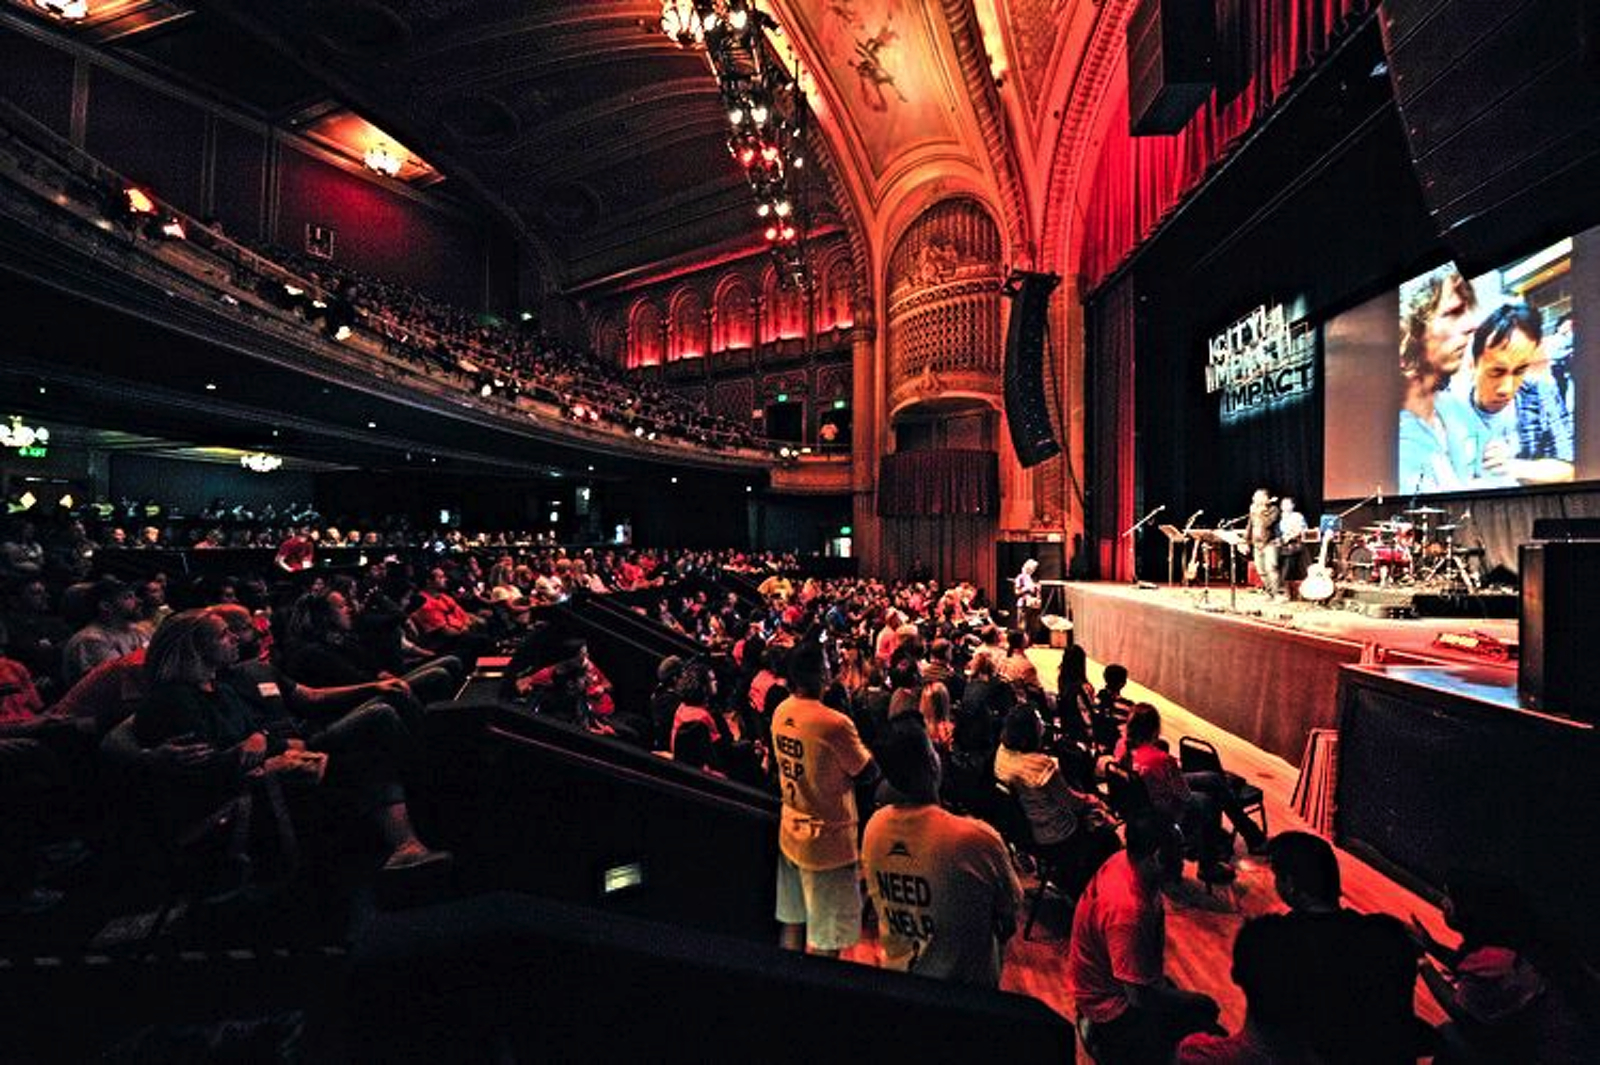 warfield_2013.jpg